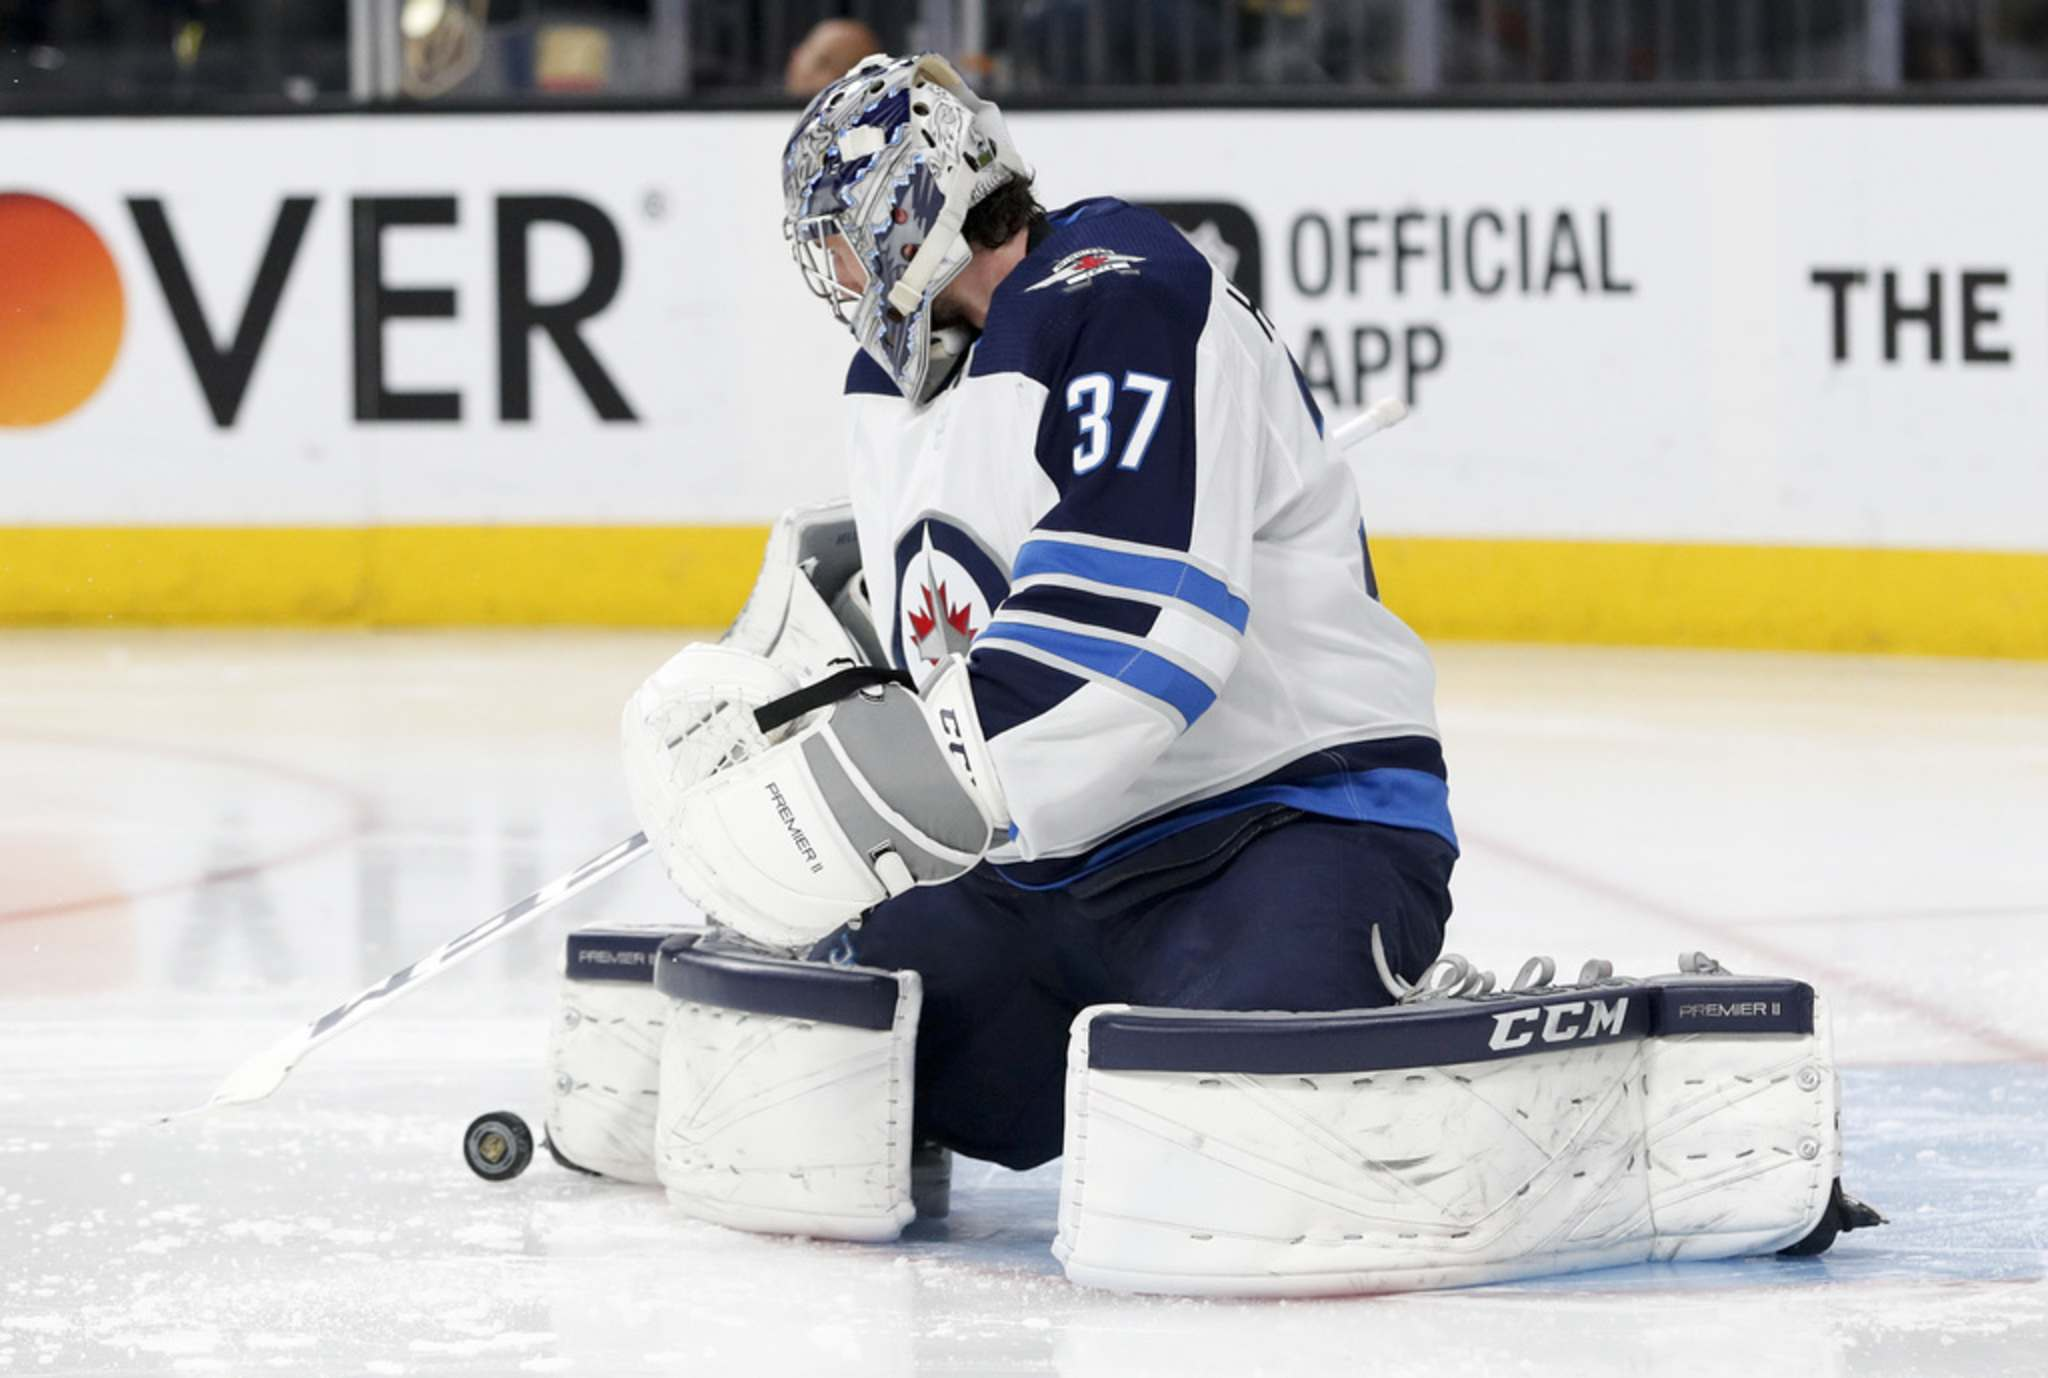 Connor Hellebuyck had a 44-11-9 record last year and will carry a heavy workload this season. His play will be a key factor in how the Jets fare. (John Locher / The Associated Press files)</p></p>